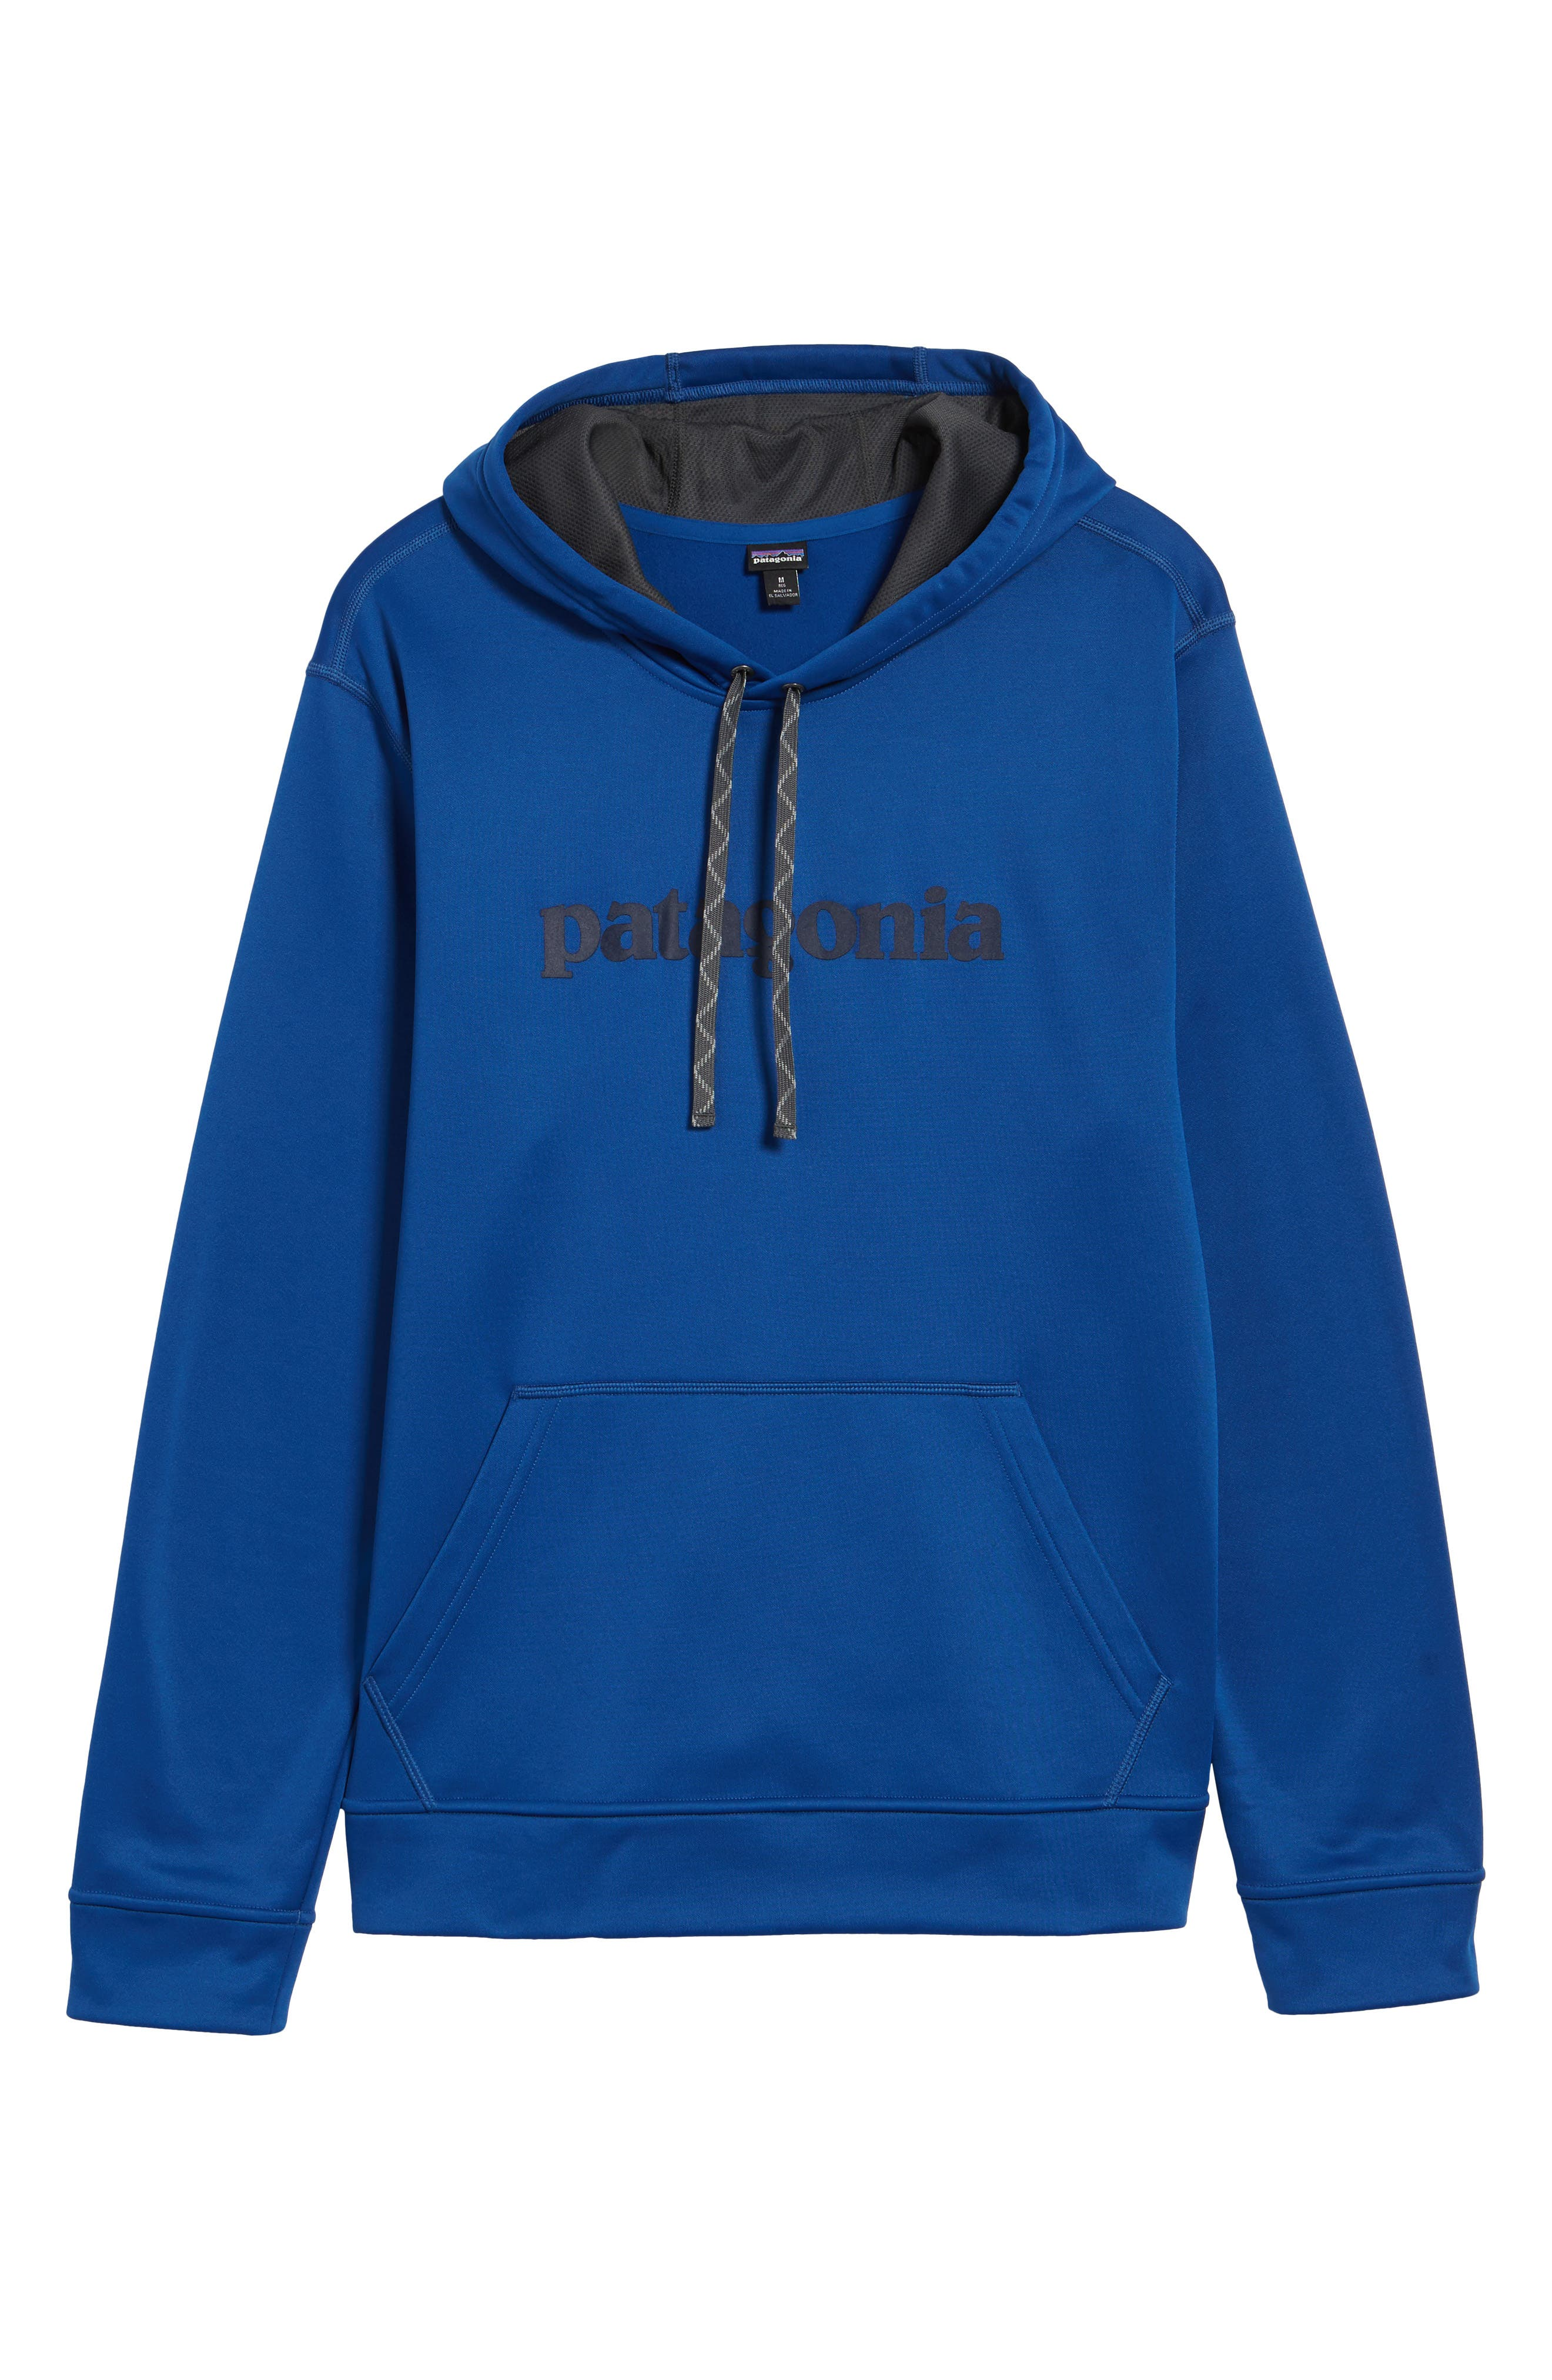 Polycycle Hoodie,                             Alternate thumbnail 12, color,